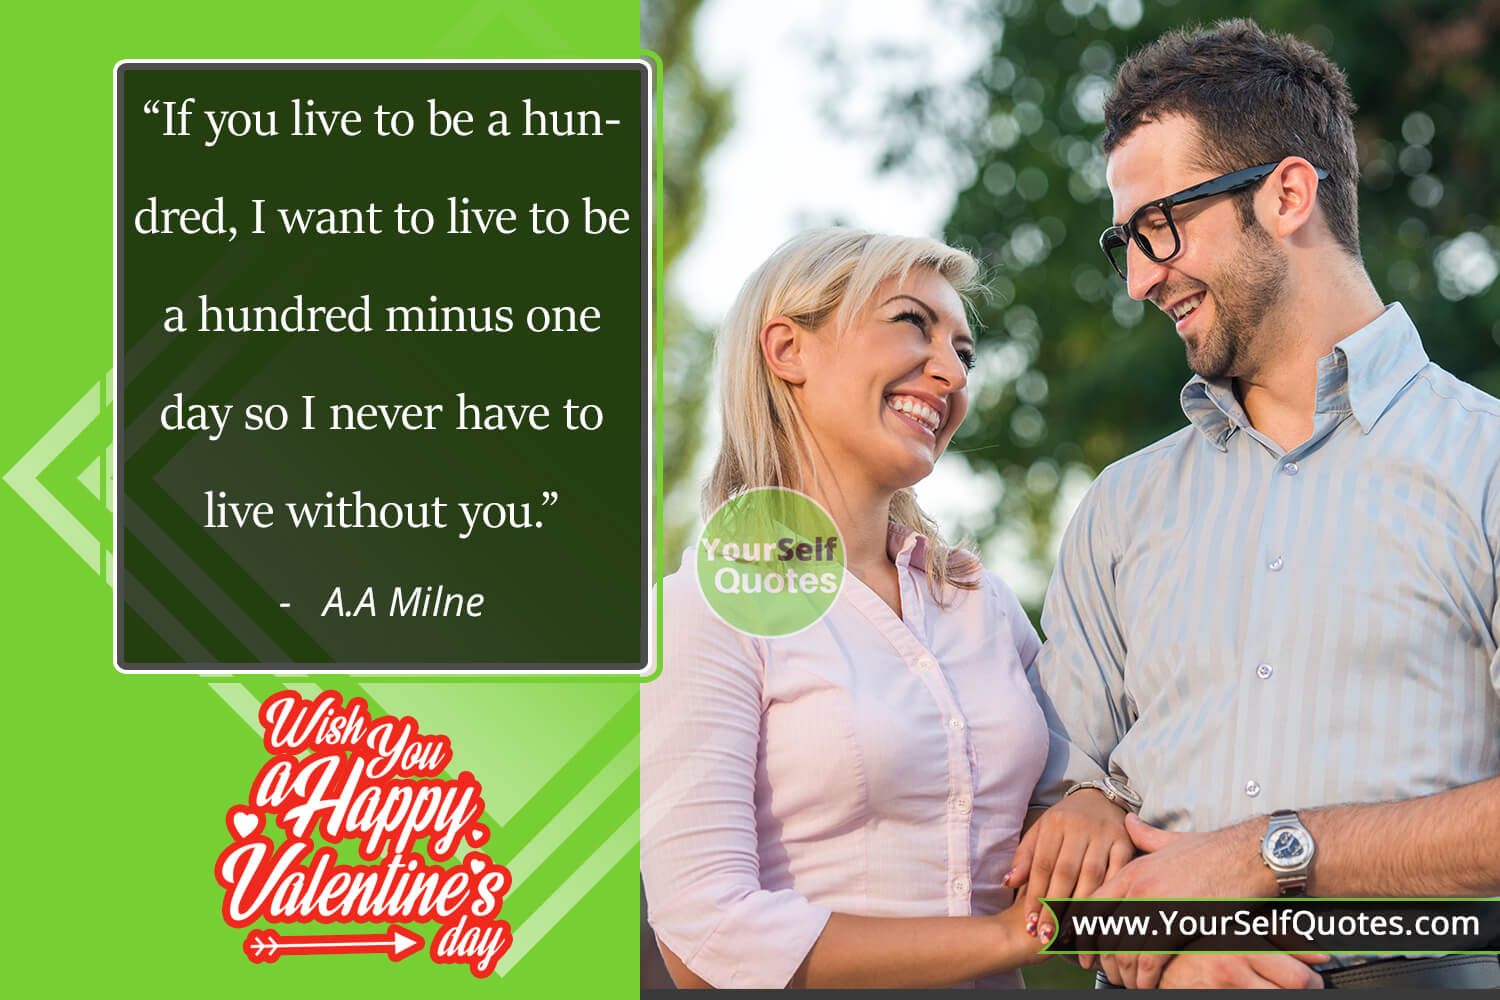 Valentine Day Quotes by A.A Milne